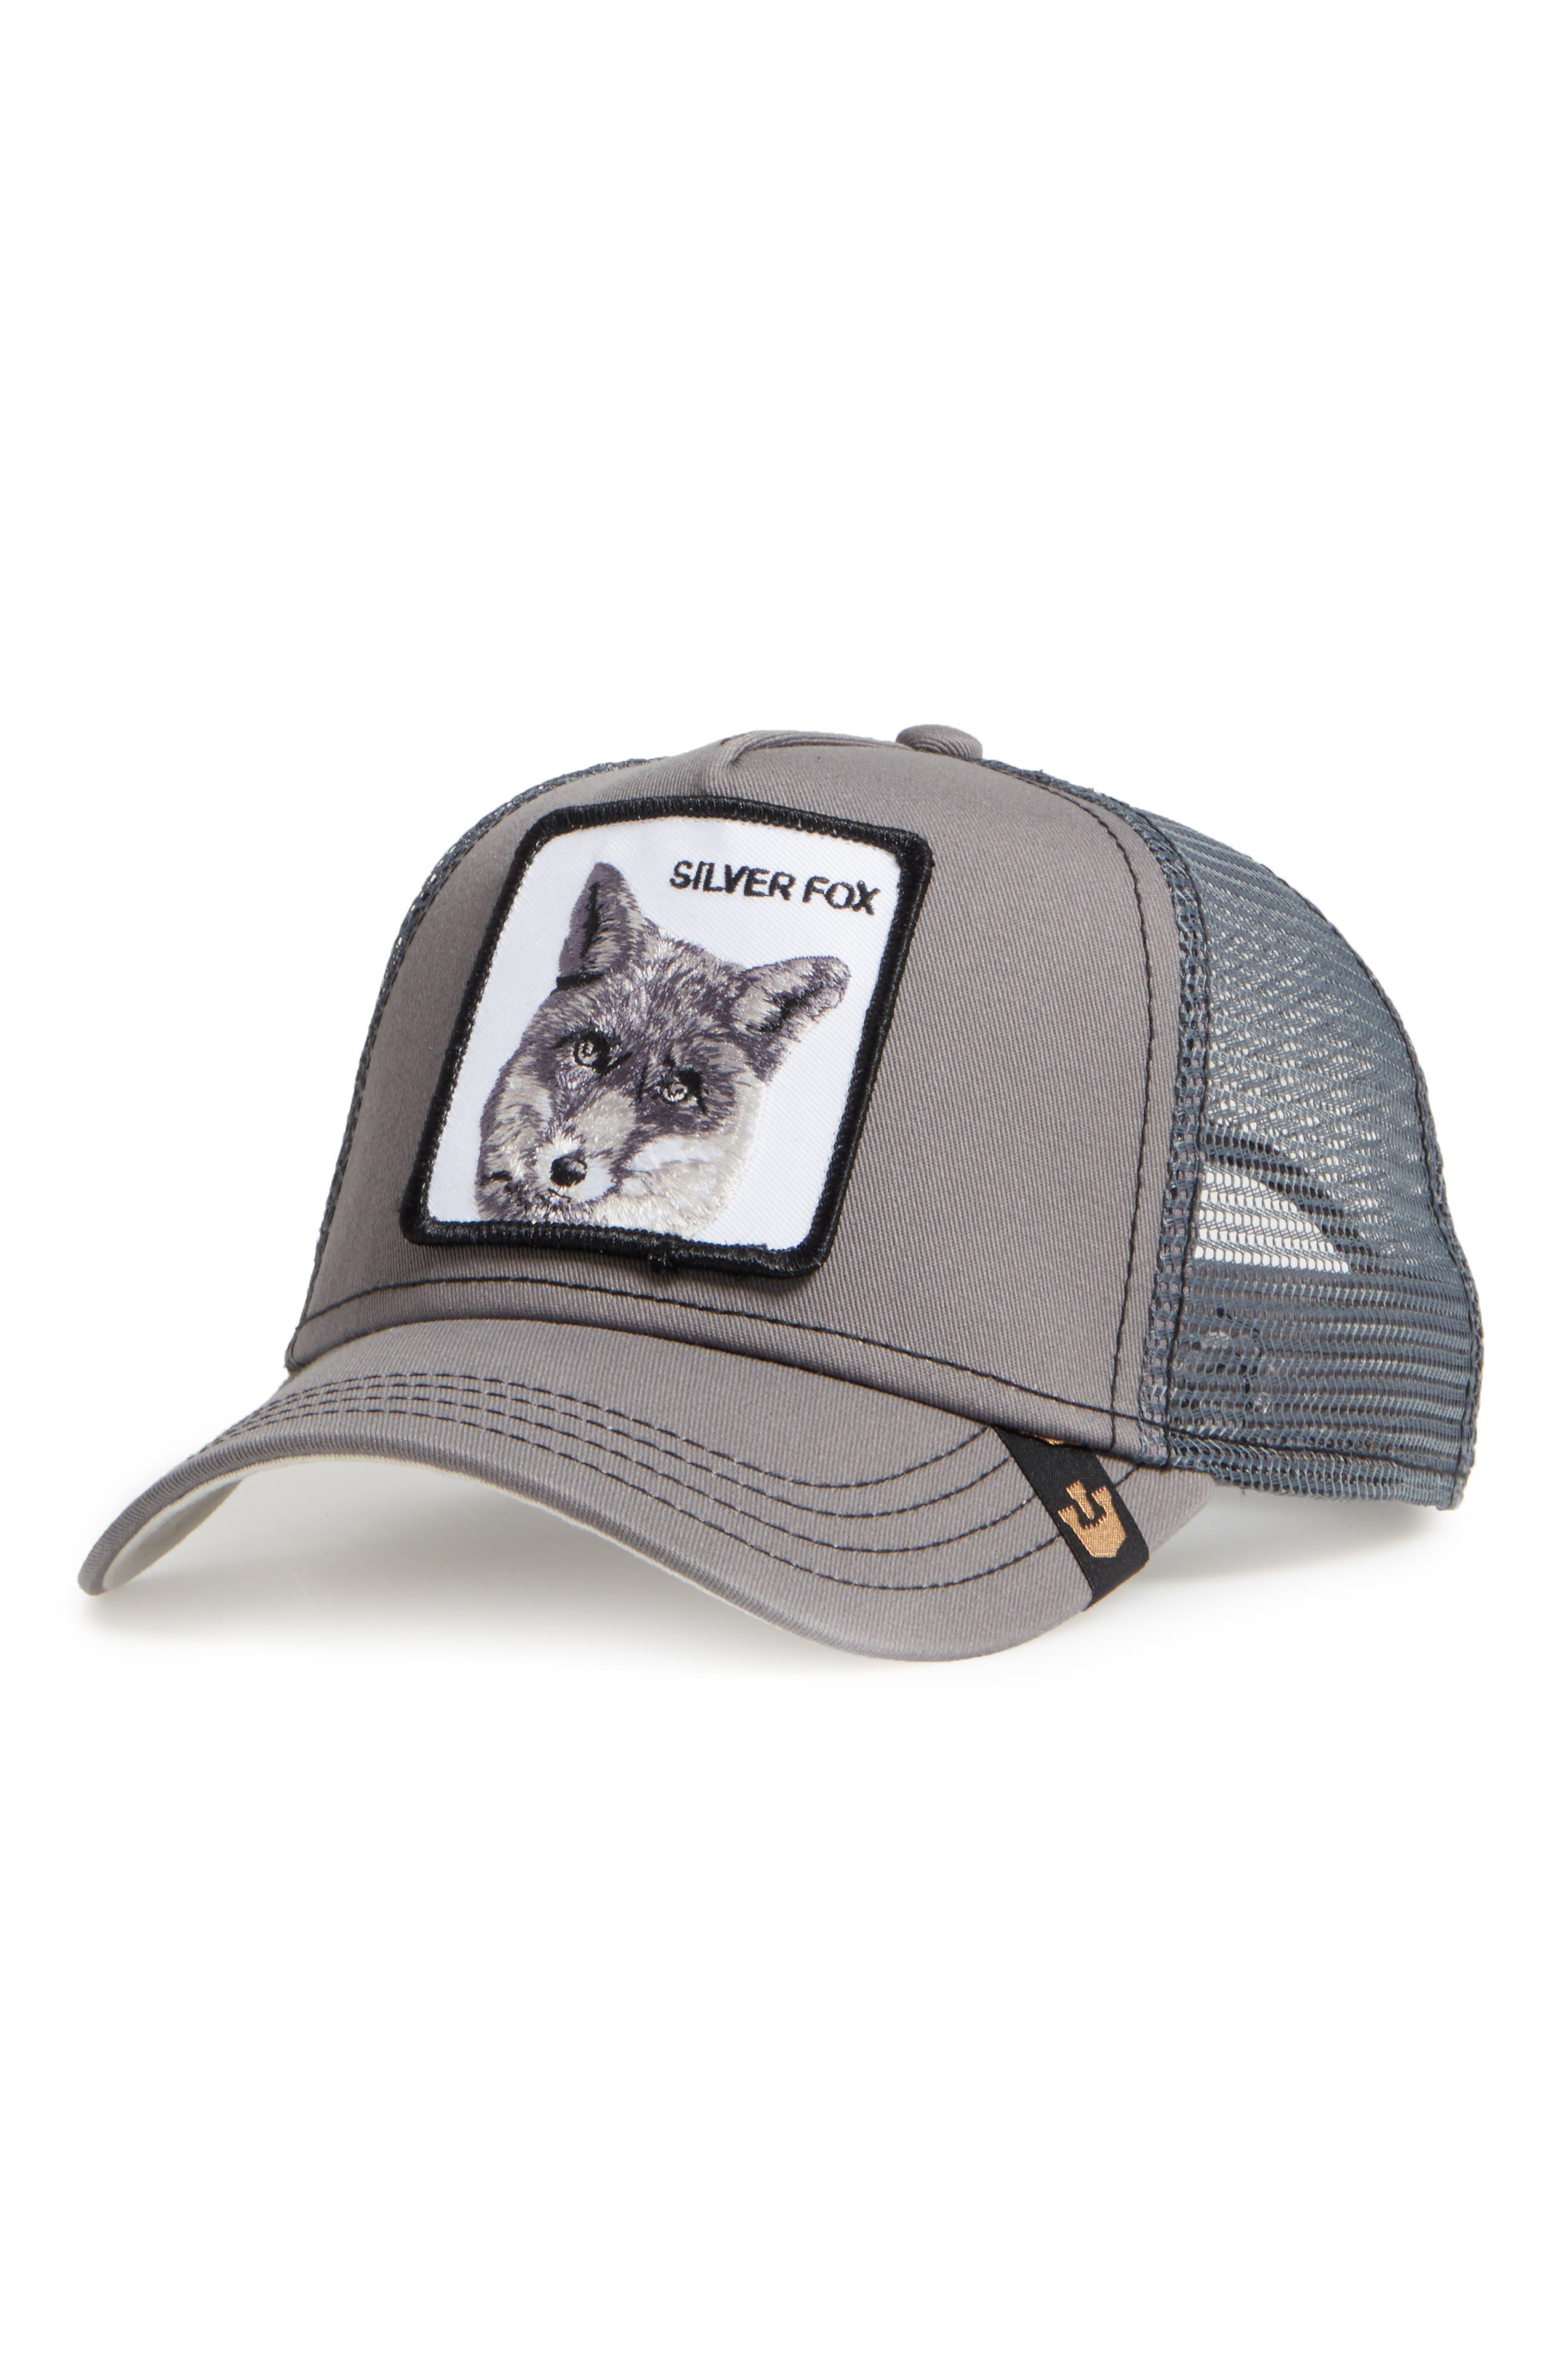 'Silver Fox' Trucker Hat,                         Main,                         color, CHARCOAL